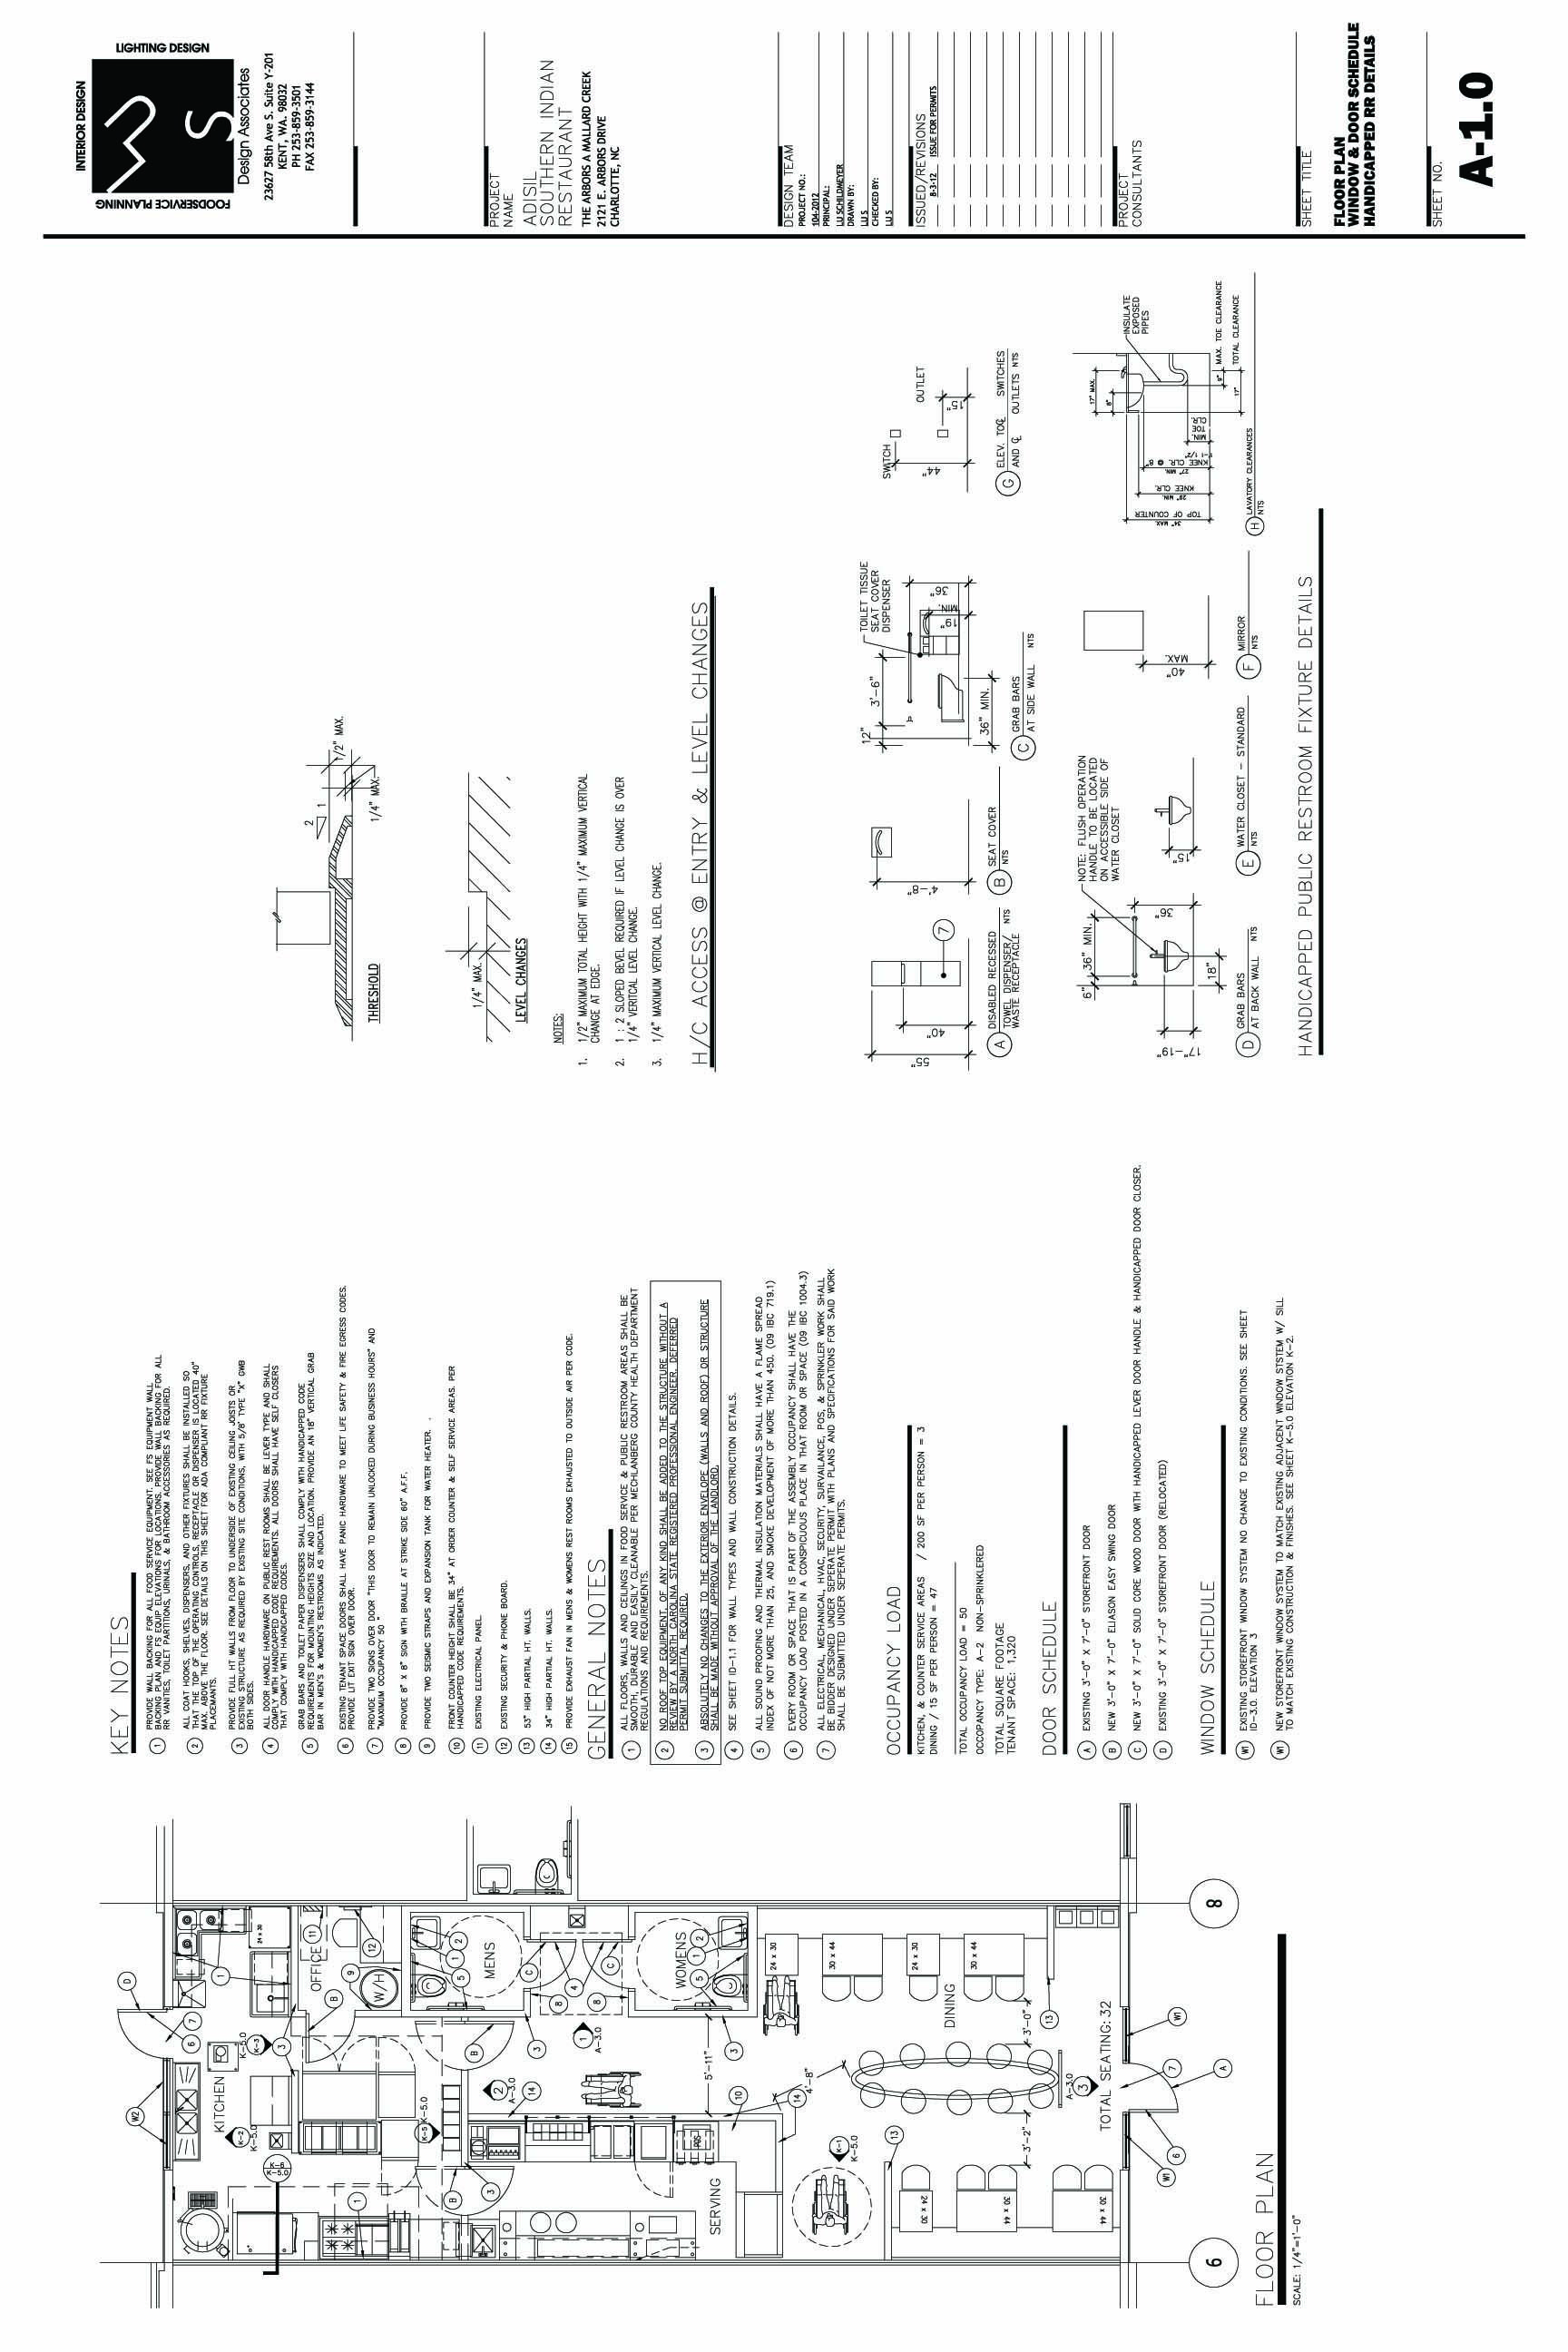 Adisil CD Floor Plan With Notes Designed By LU S Design